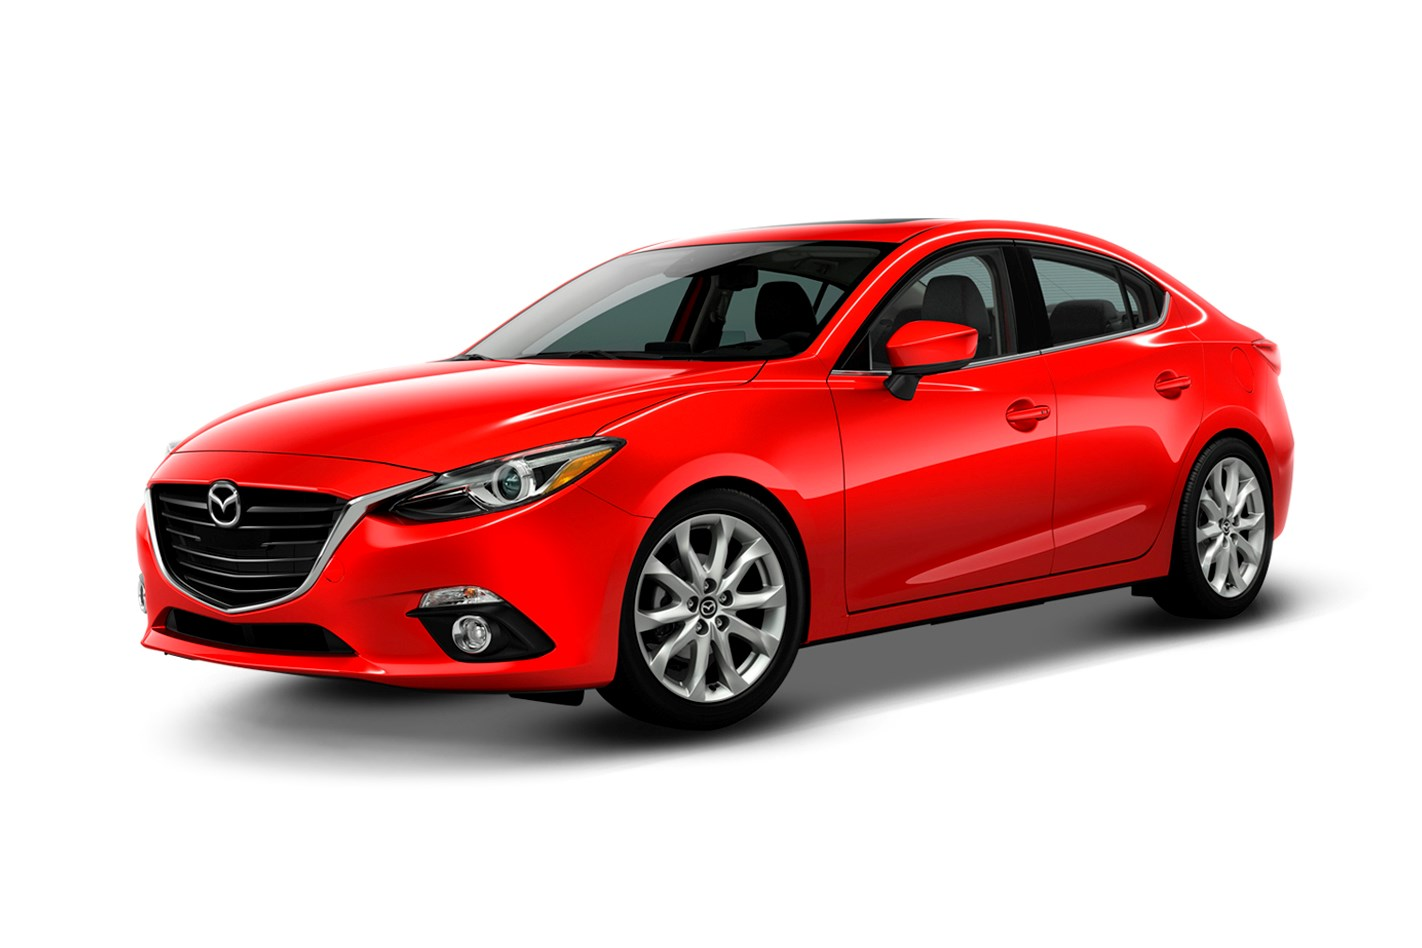 Mazda 3 Owners Manual: Specifications